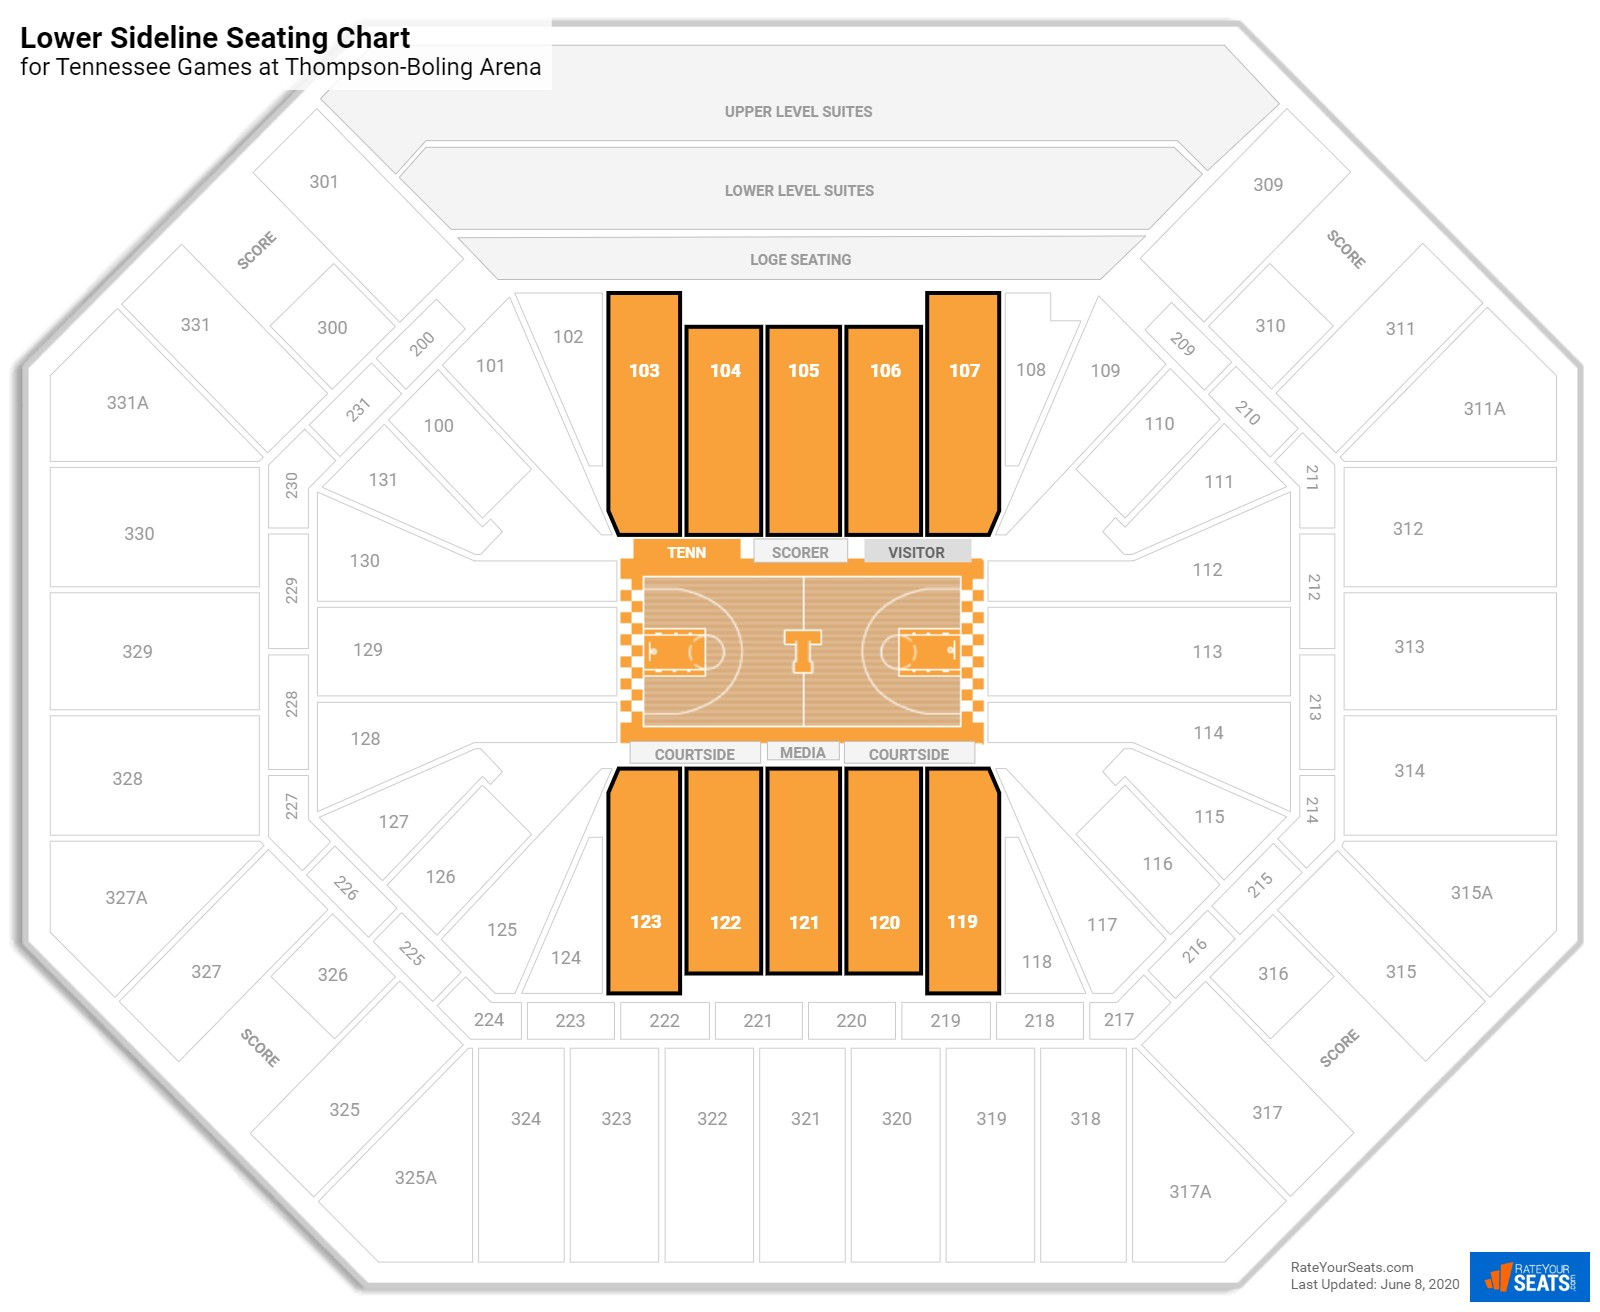 Thompson Boling Arena Lower Sideline Seating Chart